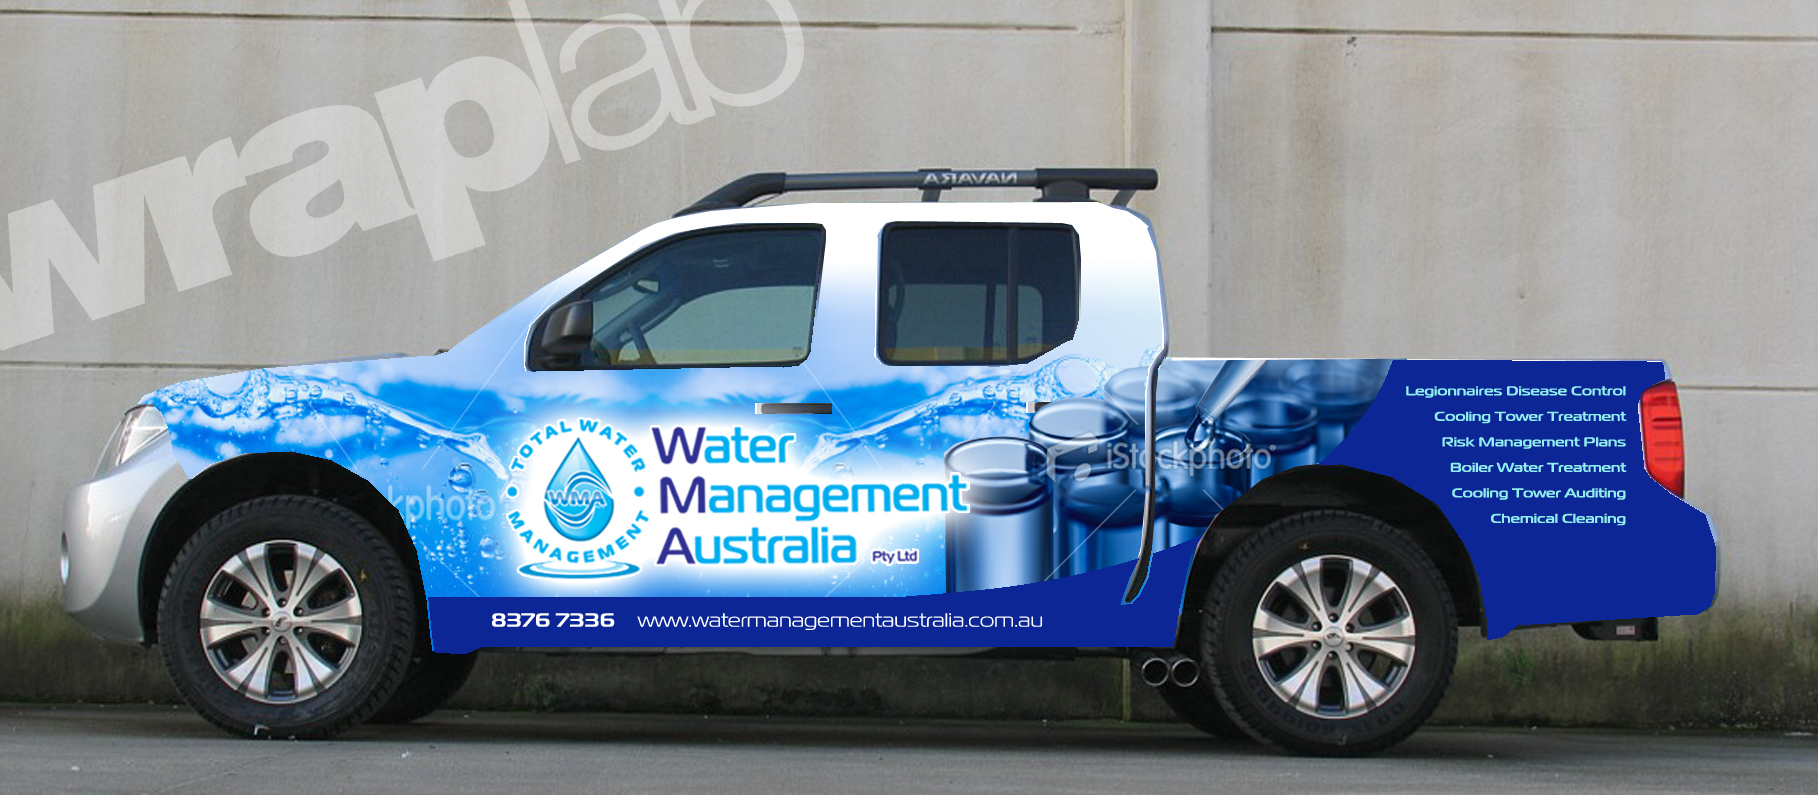 Water Management Australia Service Vehicle